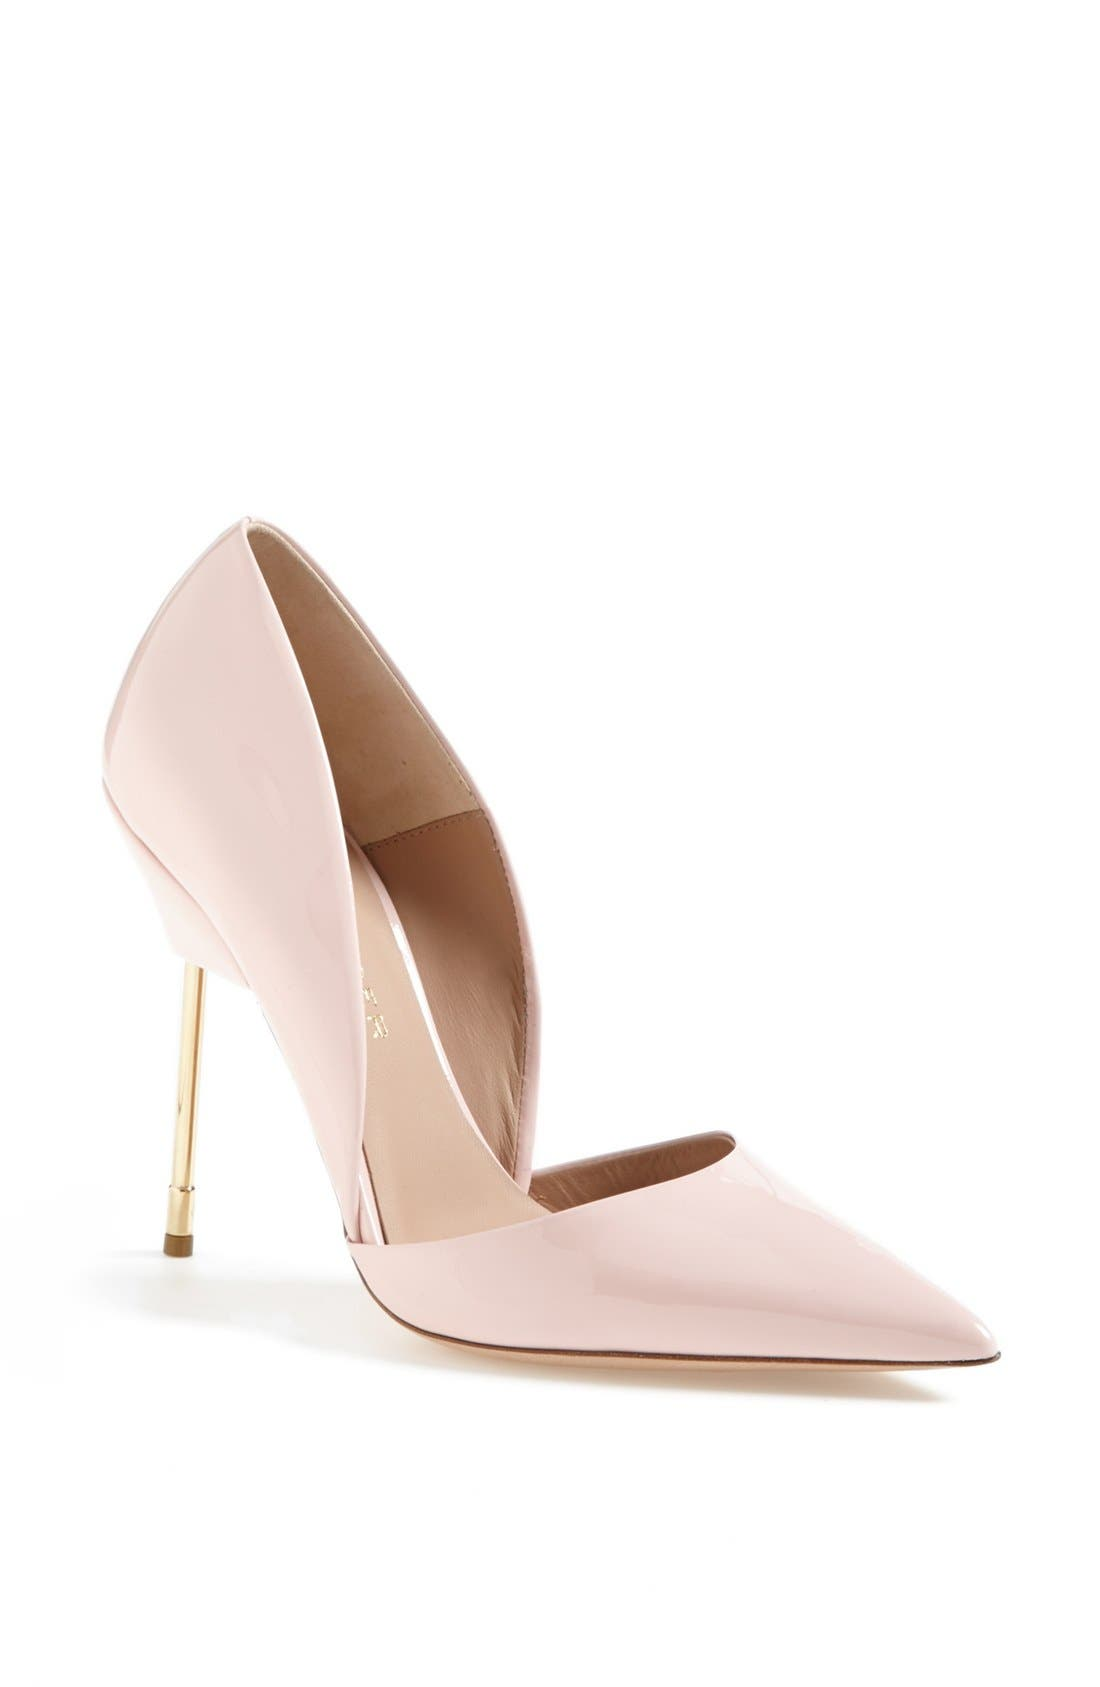 Main Image - Kurt Geiger London 'Bond' d'Orsay Pump